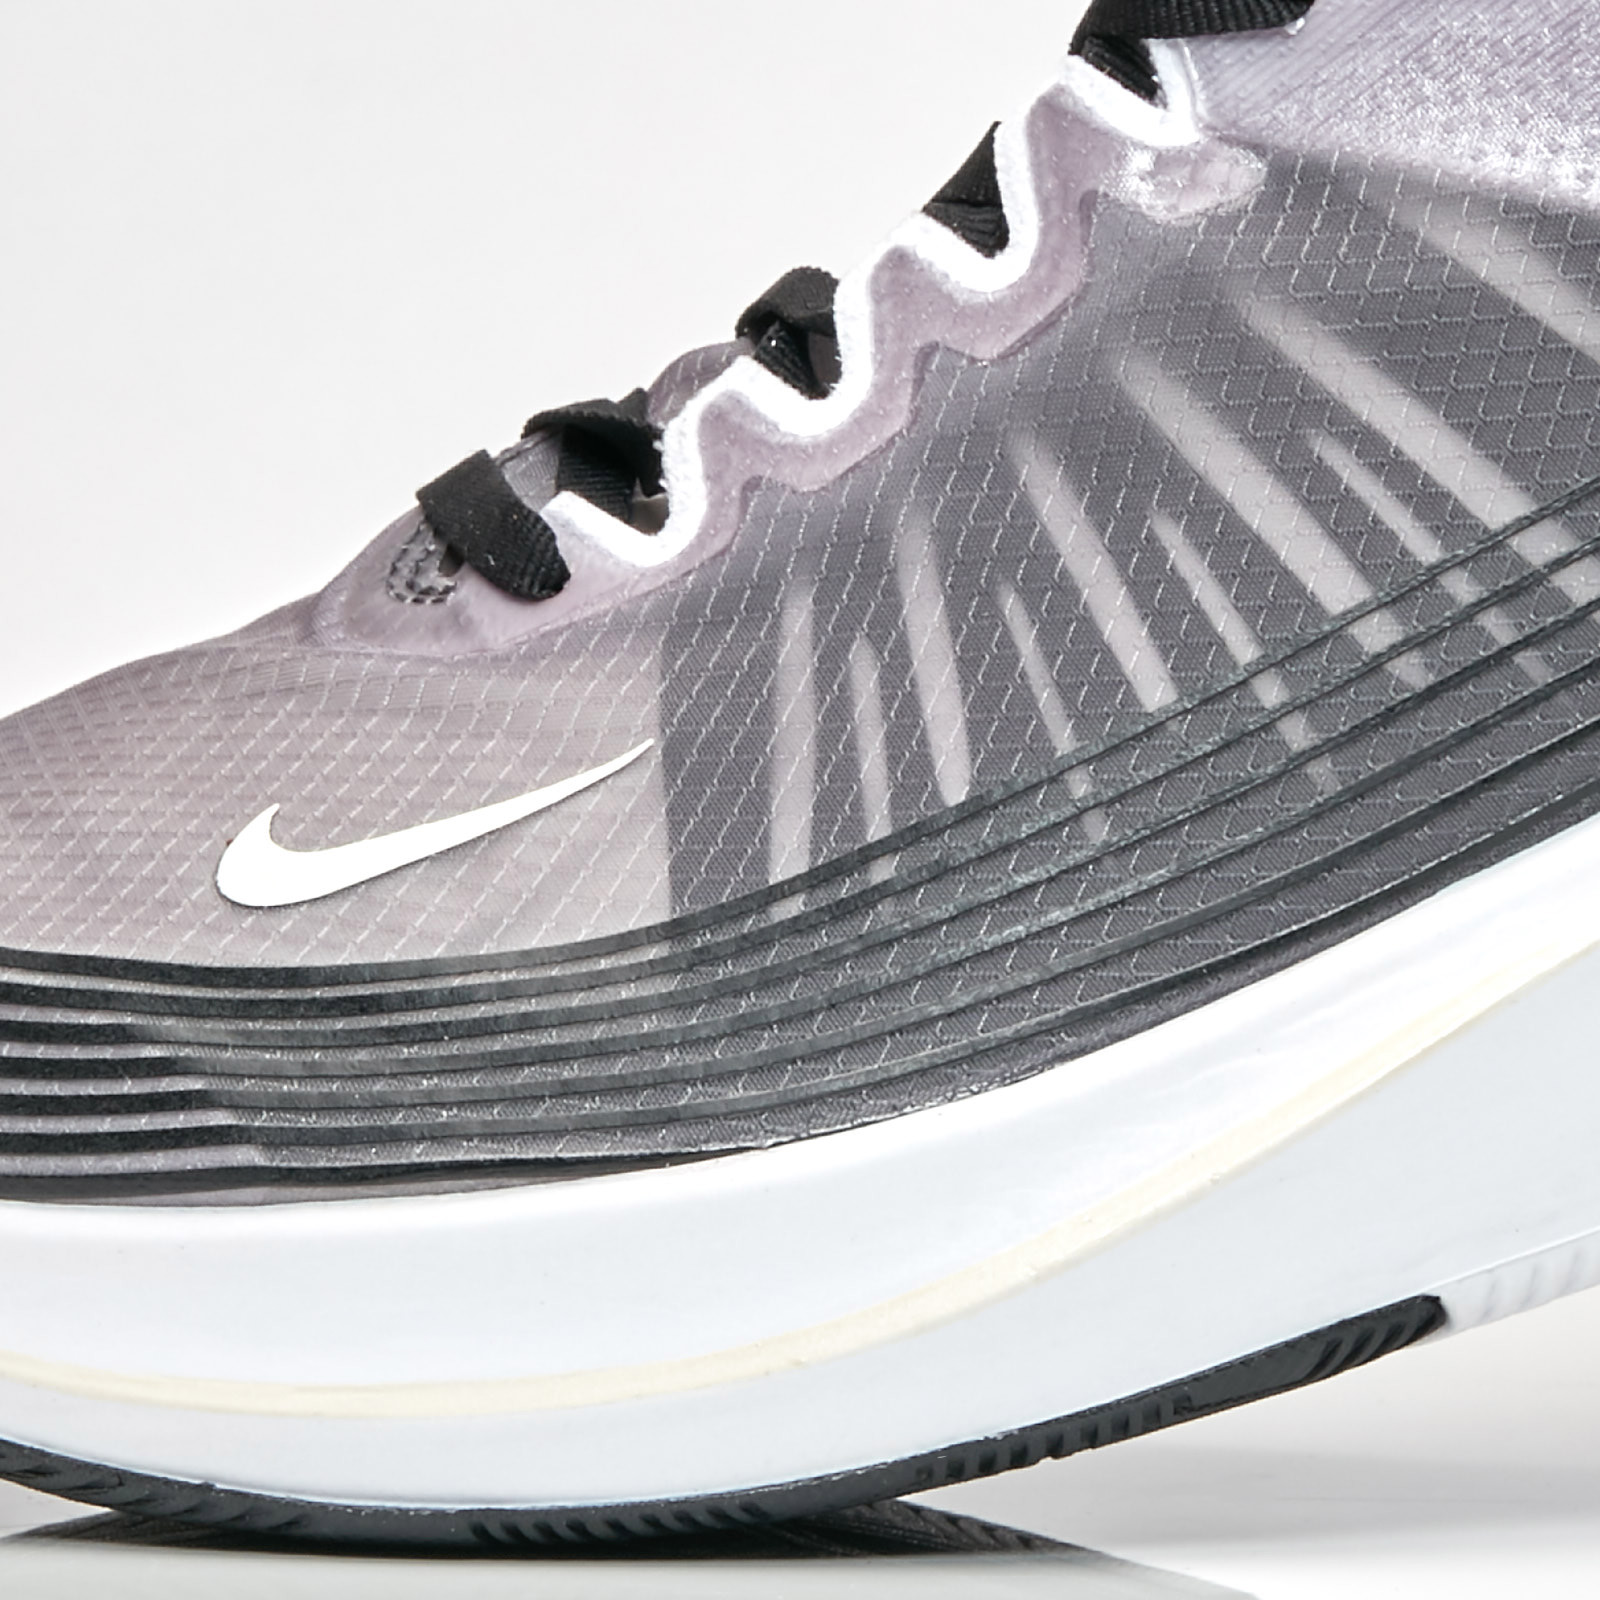 separation shoes cf882 2be10 Nike Zoom Fly SP - Aj9282-001 - Sneakersnstuff I Sneakers ...